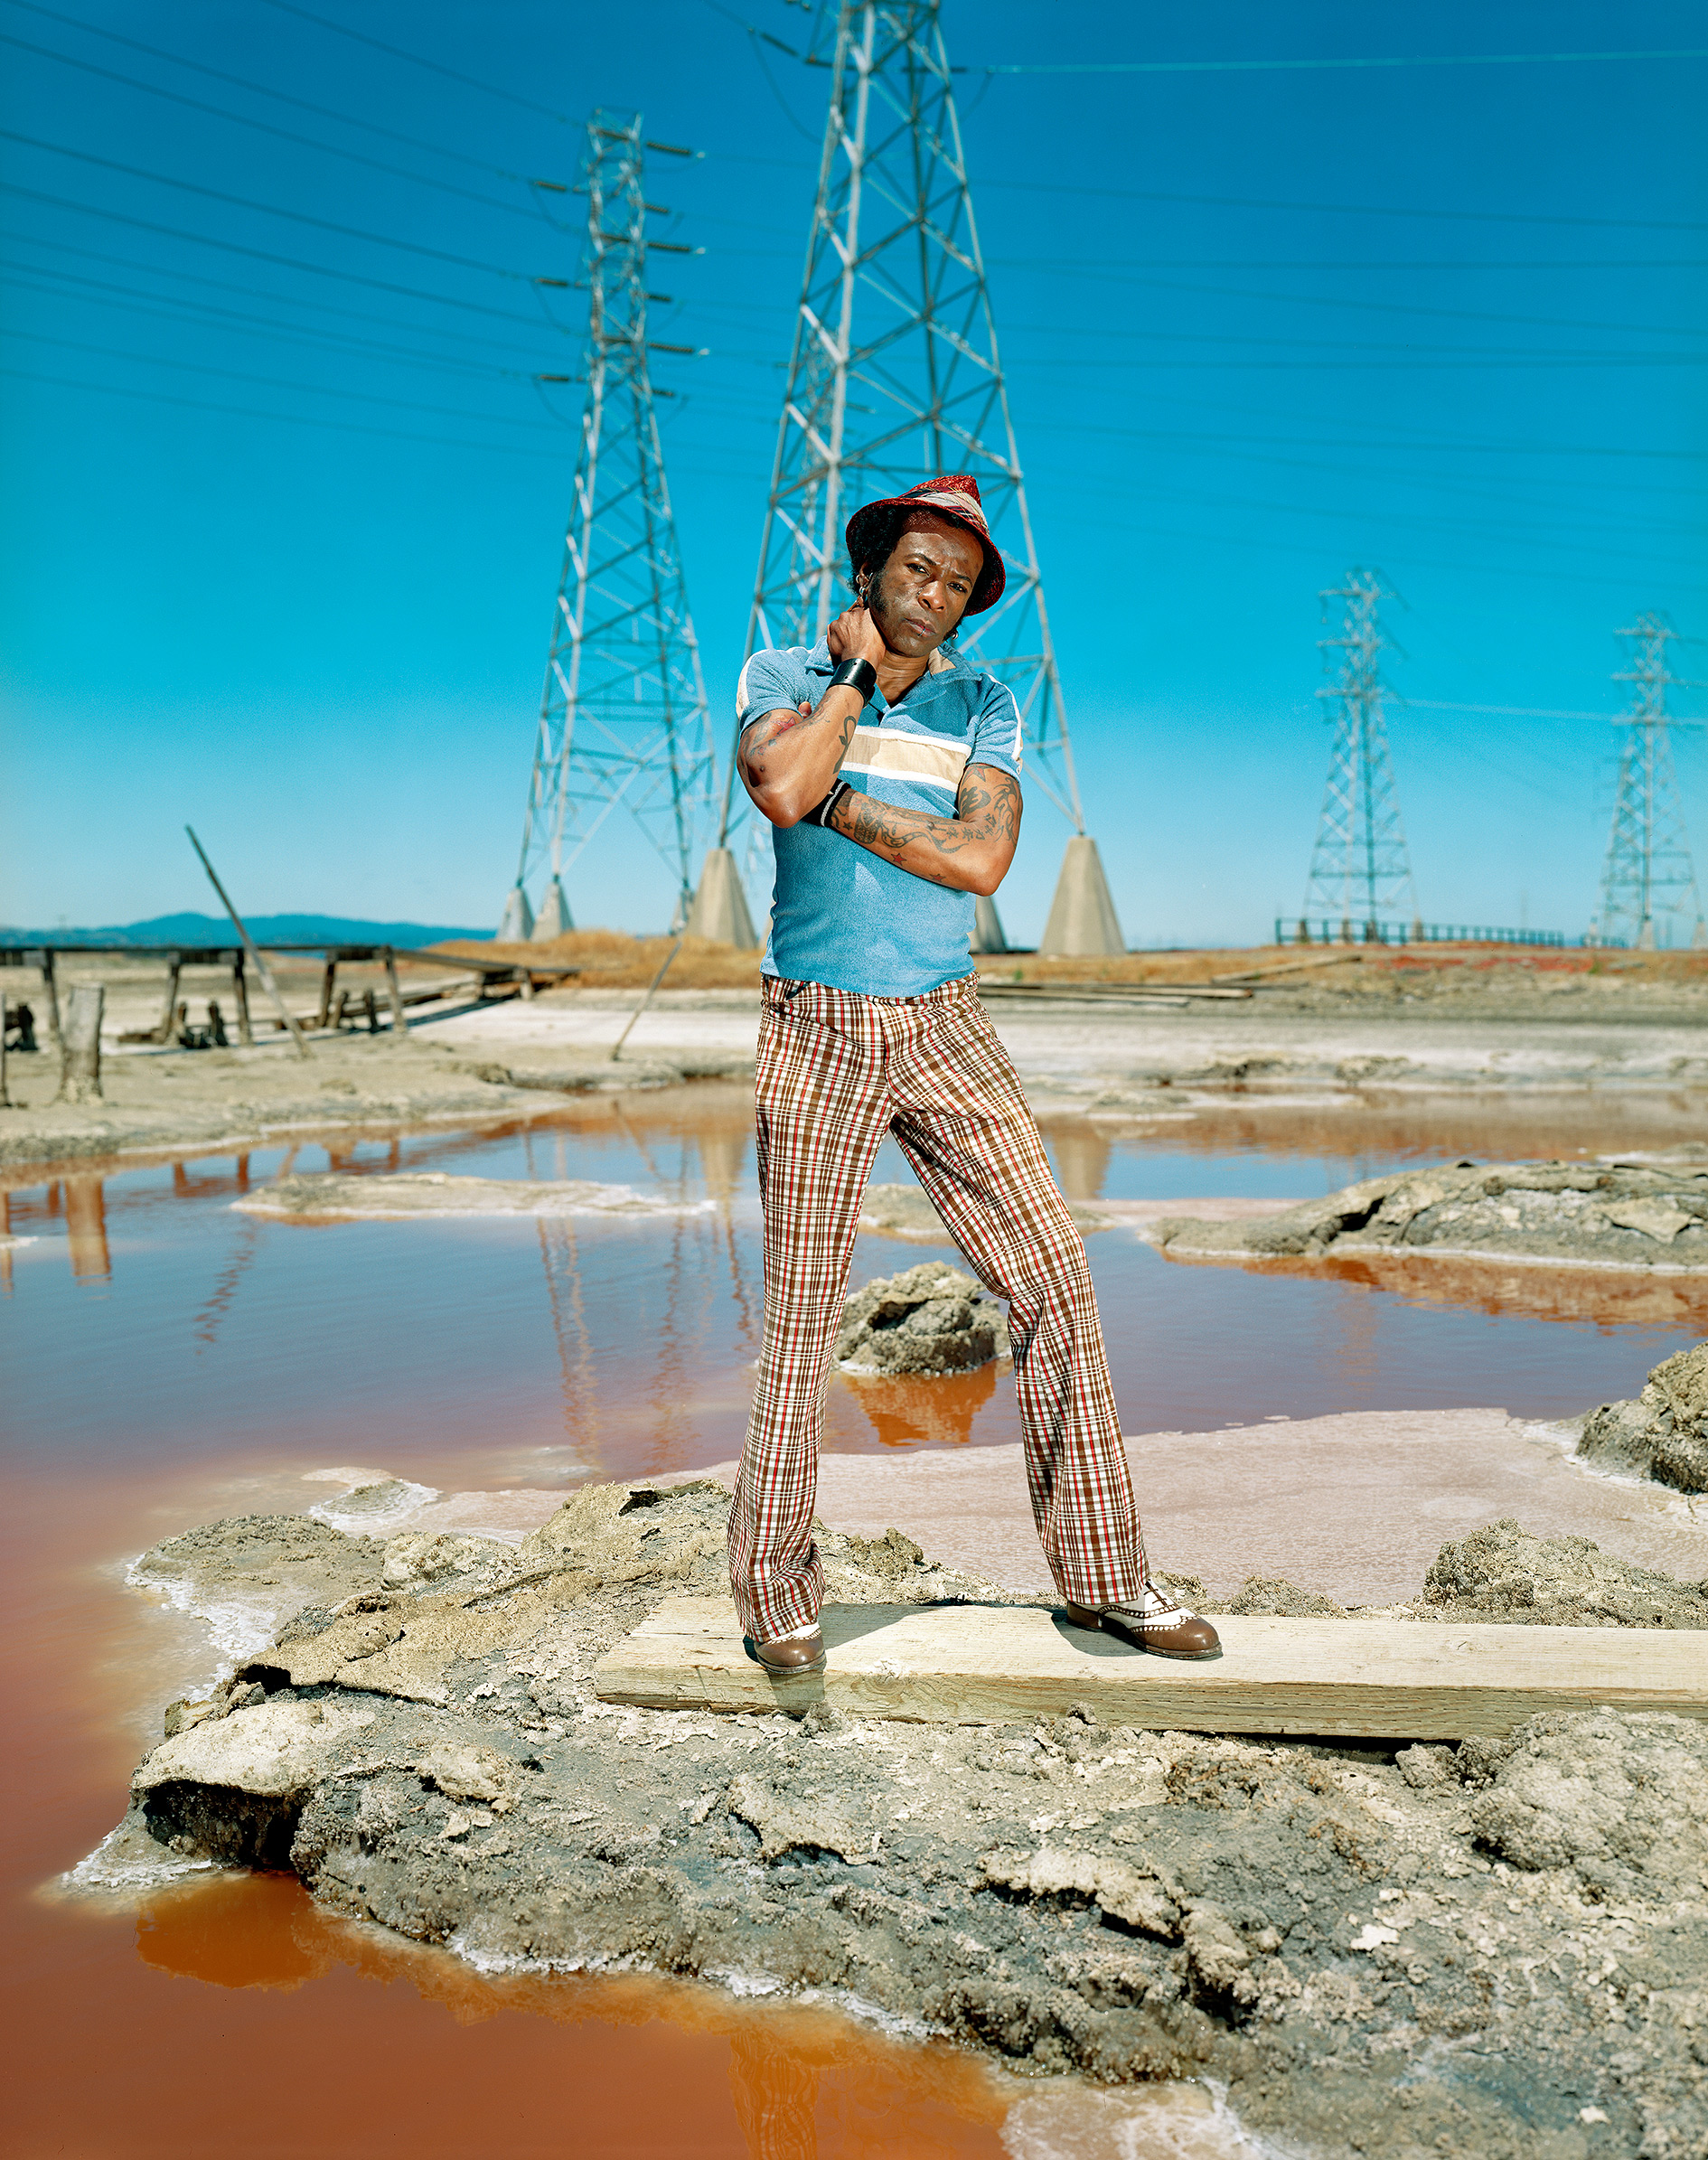 """Willie,   from the """"Salinas"""" series. Chromogenic Print ( Collezione dell'artista ) 76.83 x 102.2 cm. (30 1/4 x 40 1/4 inch.)"""